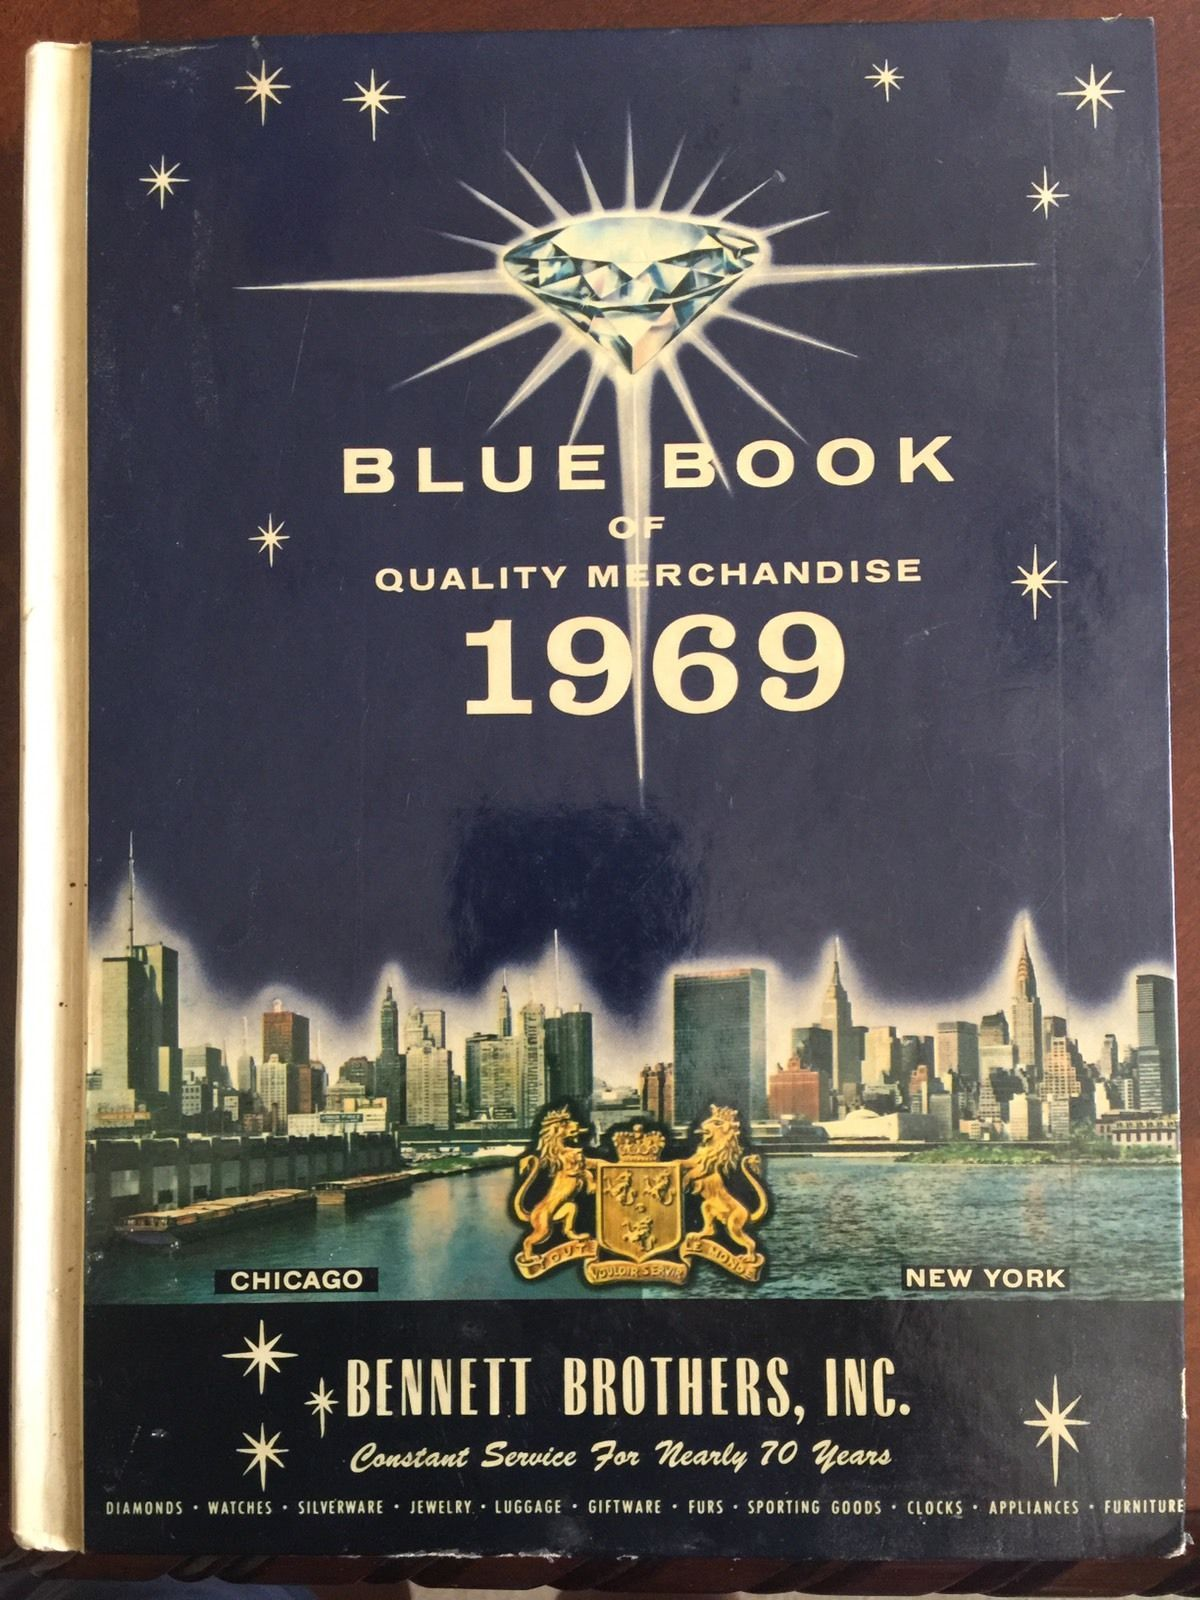 Blue Book of Quality Merchandise 1969 by Bennett Brothers Watches Guitars Furs